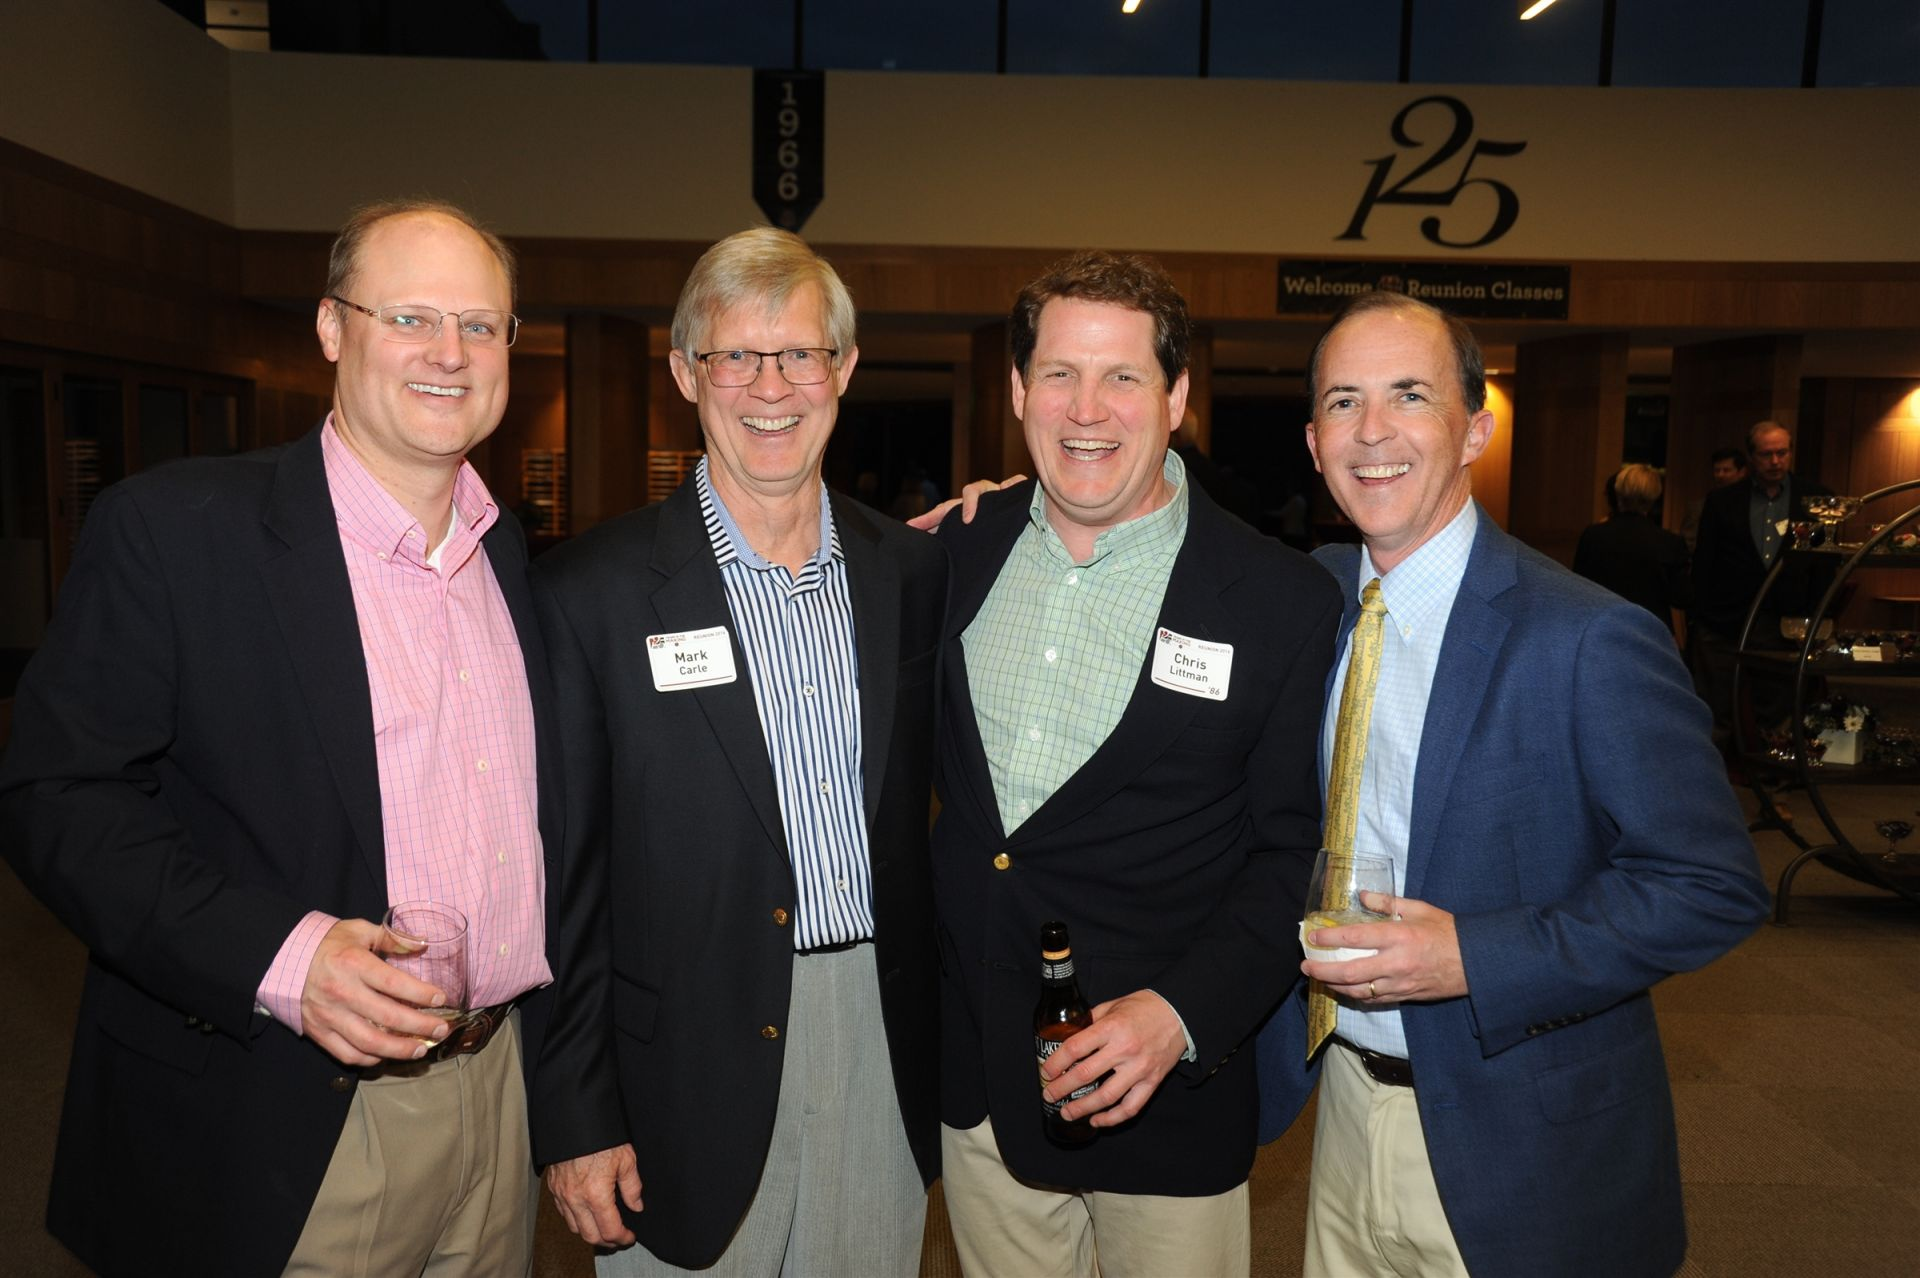 Ted Hillenmeyer '86, longtime faculty member Mark Carle, Chris Littman '86, and Matt Brinn '87